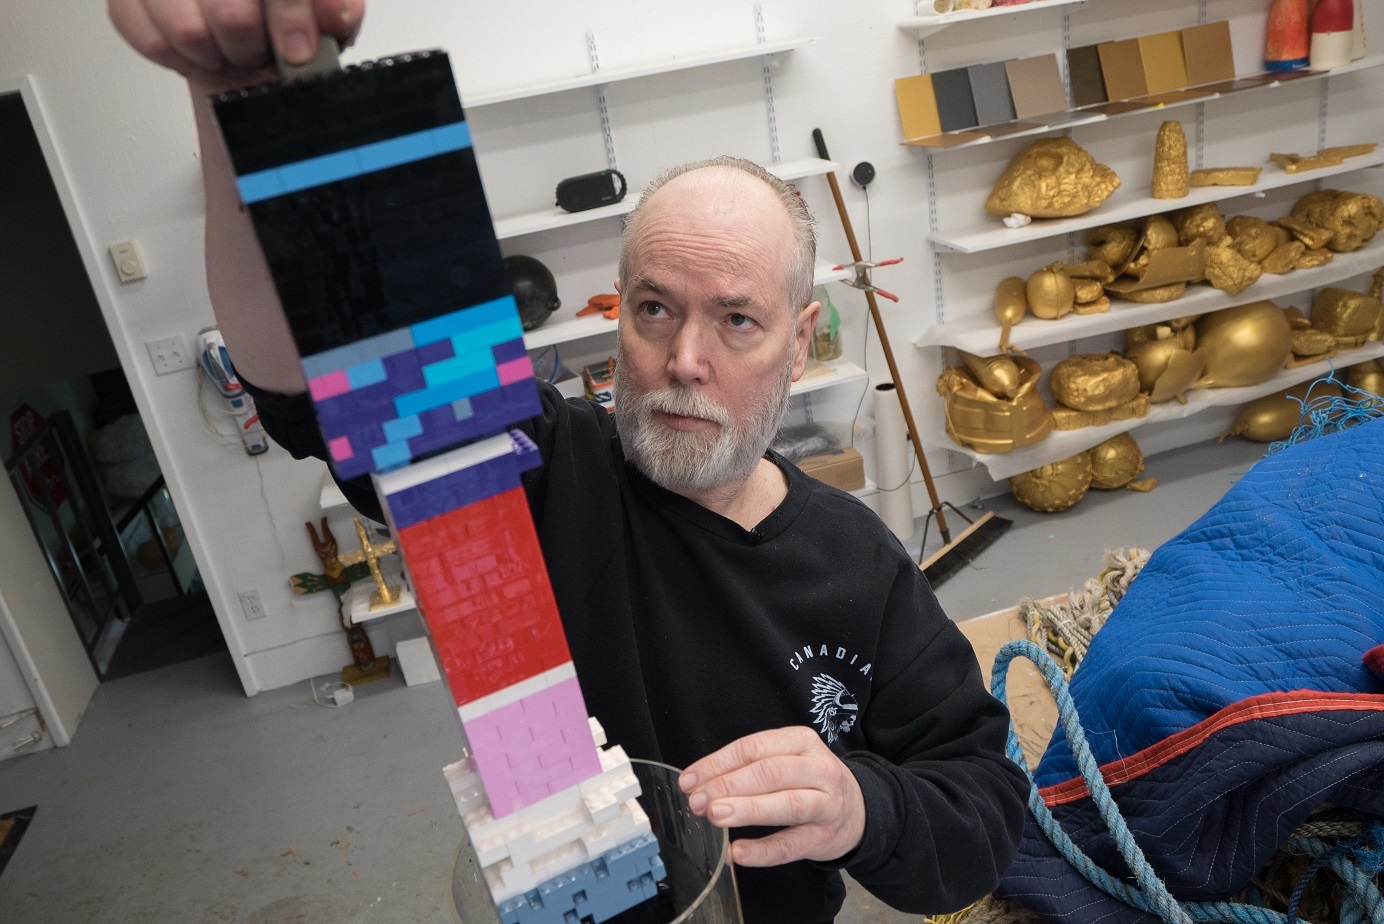 ACCLAIMED ARTIST DOUGLAS COUPLAND GETS RADICAL WITH PLASTIC IN PROVOCATIVE VORTEX ART INSTALLATION AT THE VANCOUVER AQUARIUM®